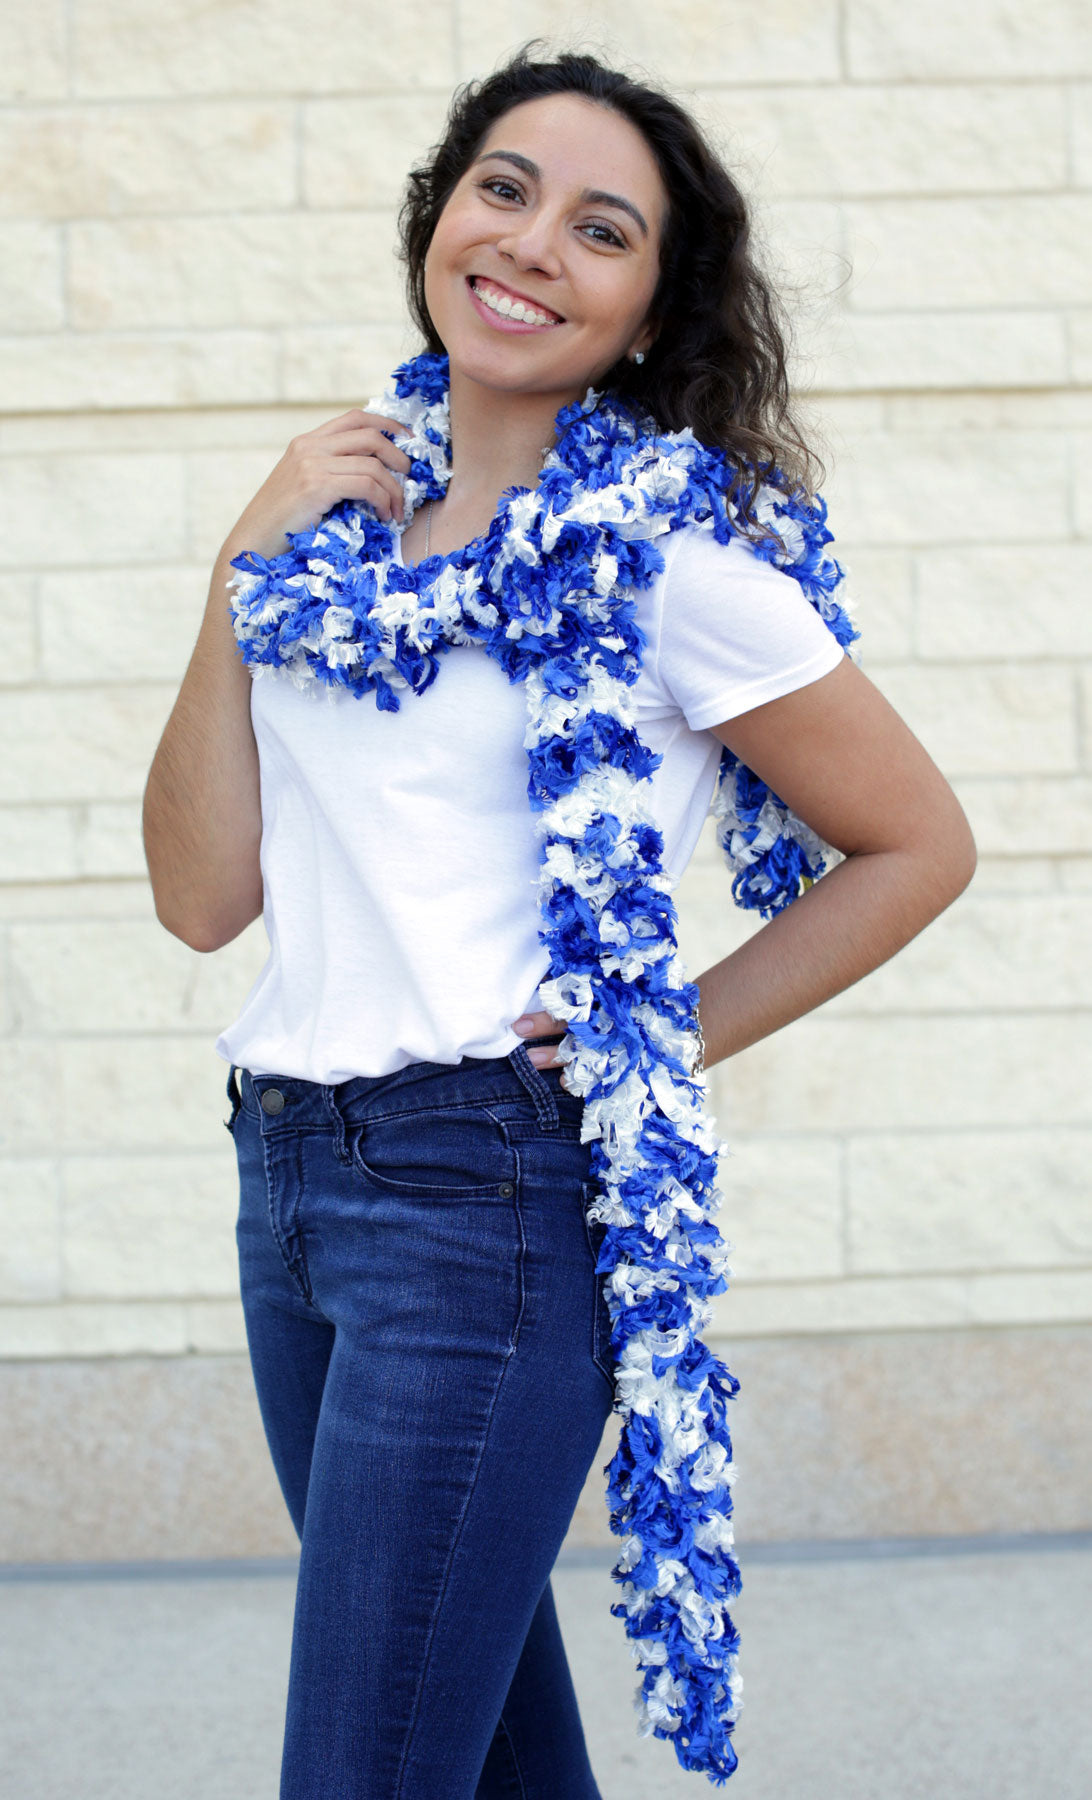 Original Featherless Boa - Cowboy (Blue and White) - Happy Boa: Faux Feather Boa